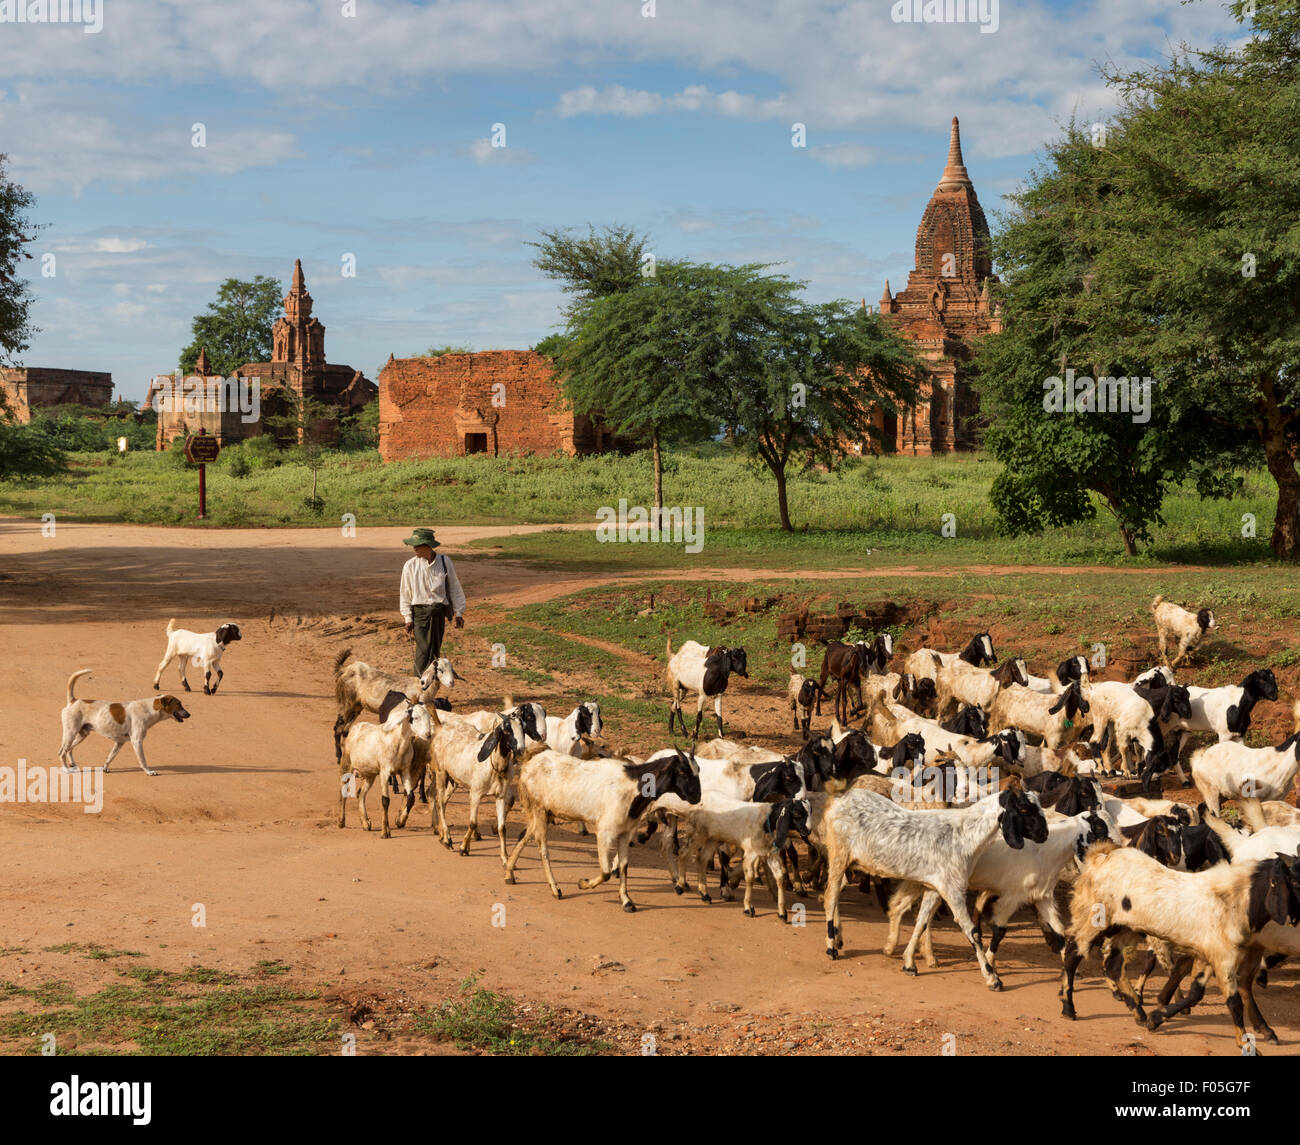 Goatherd and goats in Min Nan Thu village of Bagan, Myanmar with temples in background Stock Photo